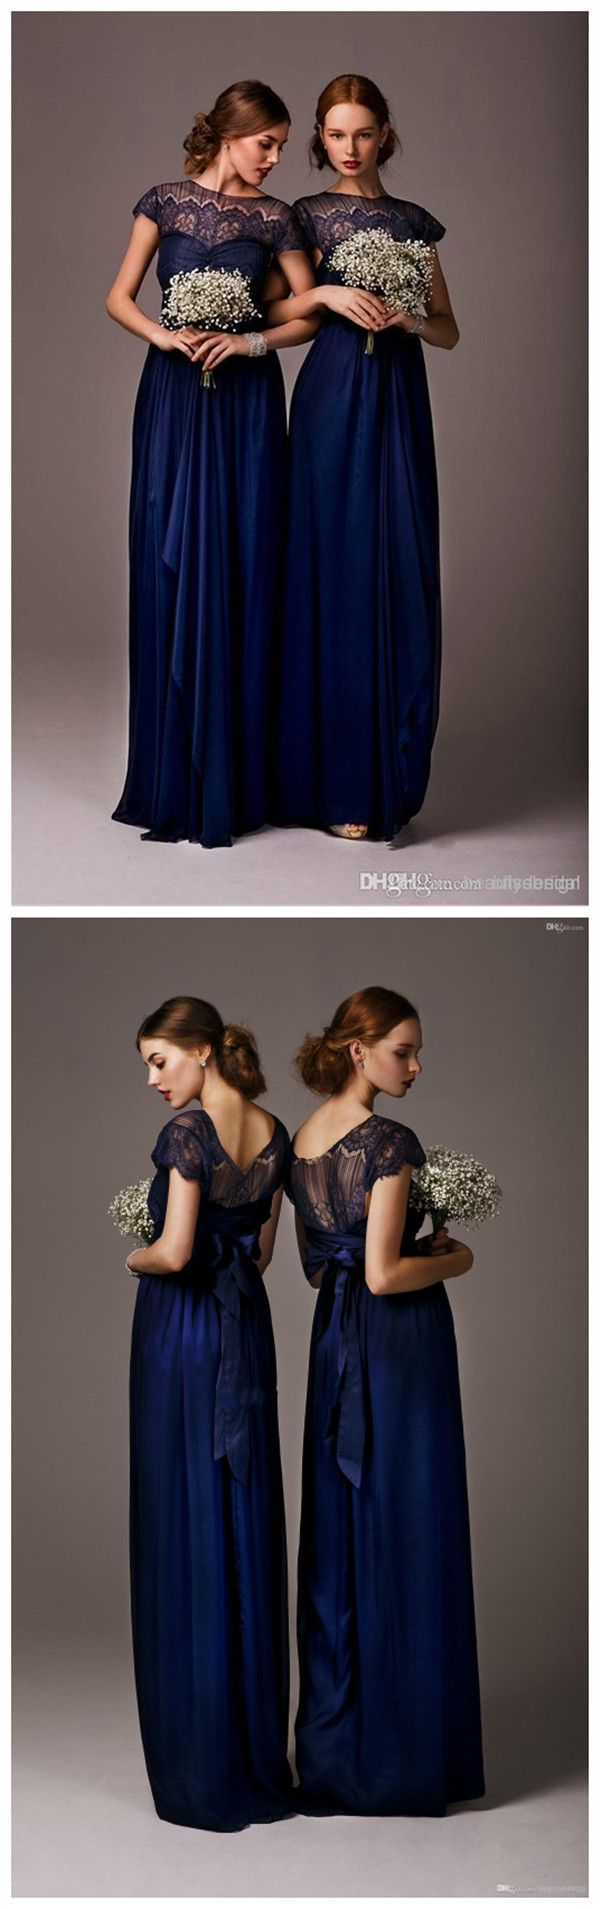 So cute and in grey!! @kkhansen13 look at these!  super cheap!! http://www.dhgate.com/store/product/2014-navy-blue-bateau-sheer-lace-long-cheap/196422855.html